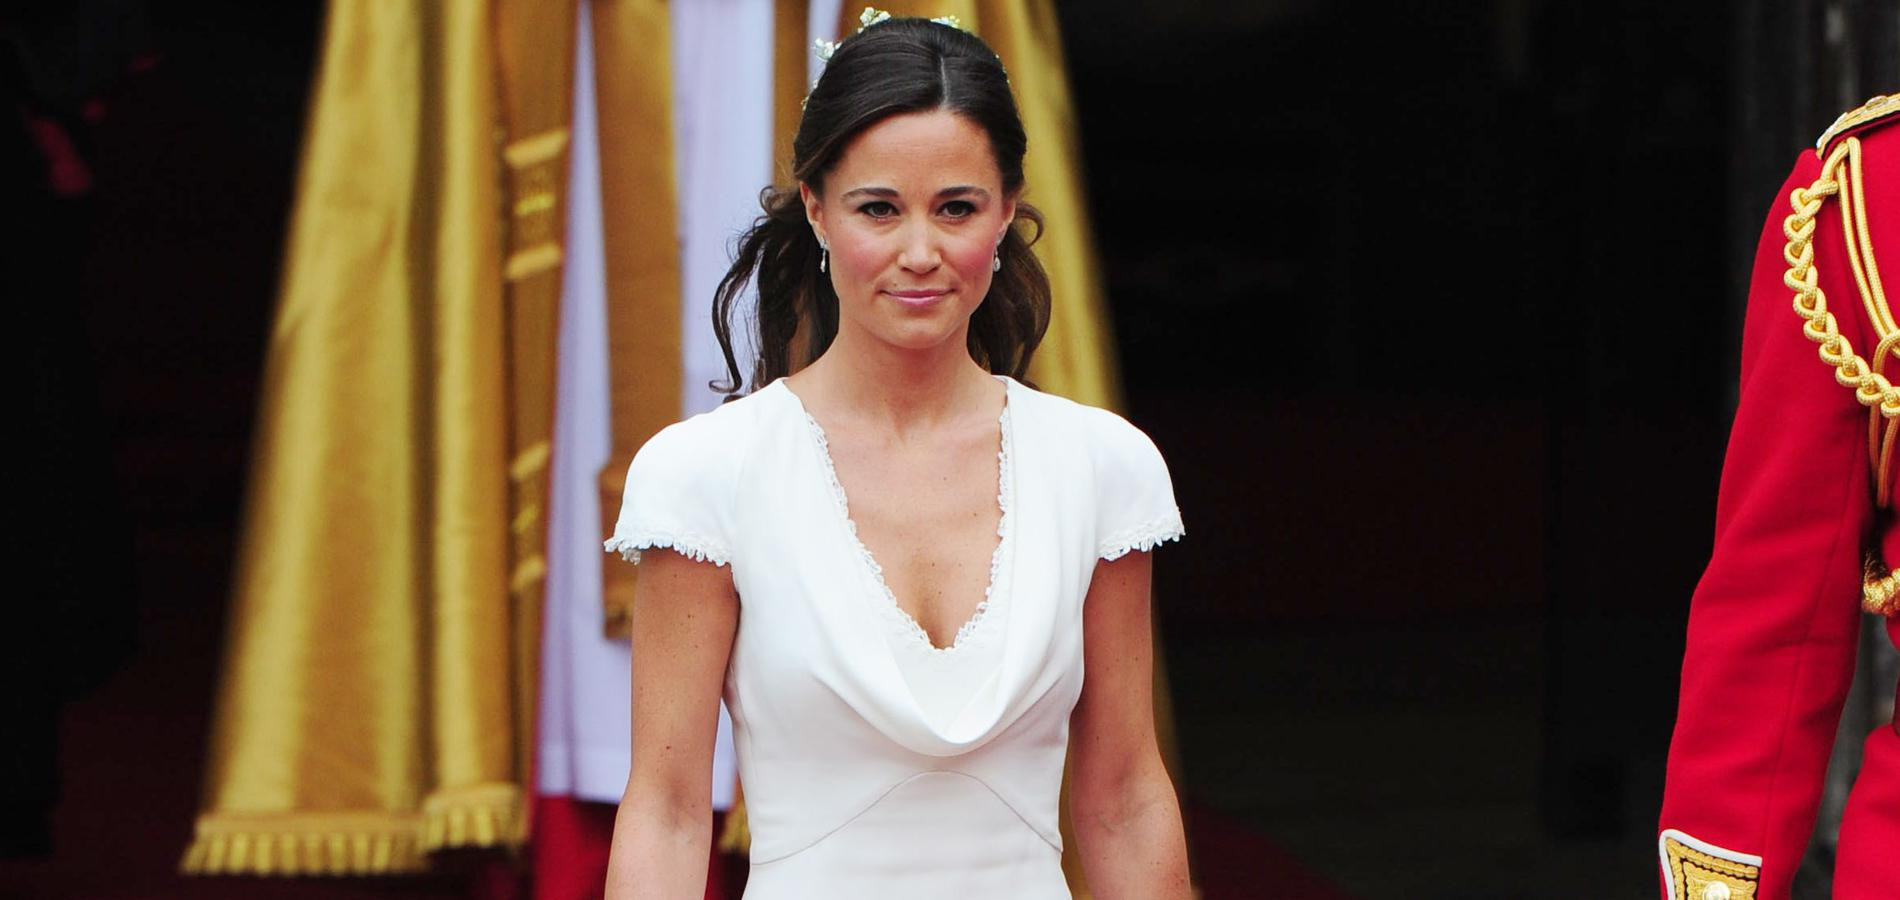 mariage de pippa middleton ce qu 39 il faut savoir sur la c r monie. Black Bedroom Furniture Sets. Home Design Ideas